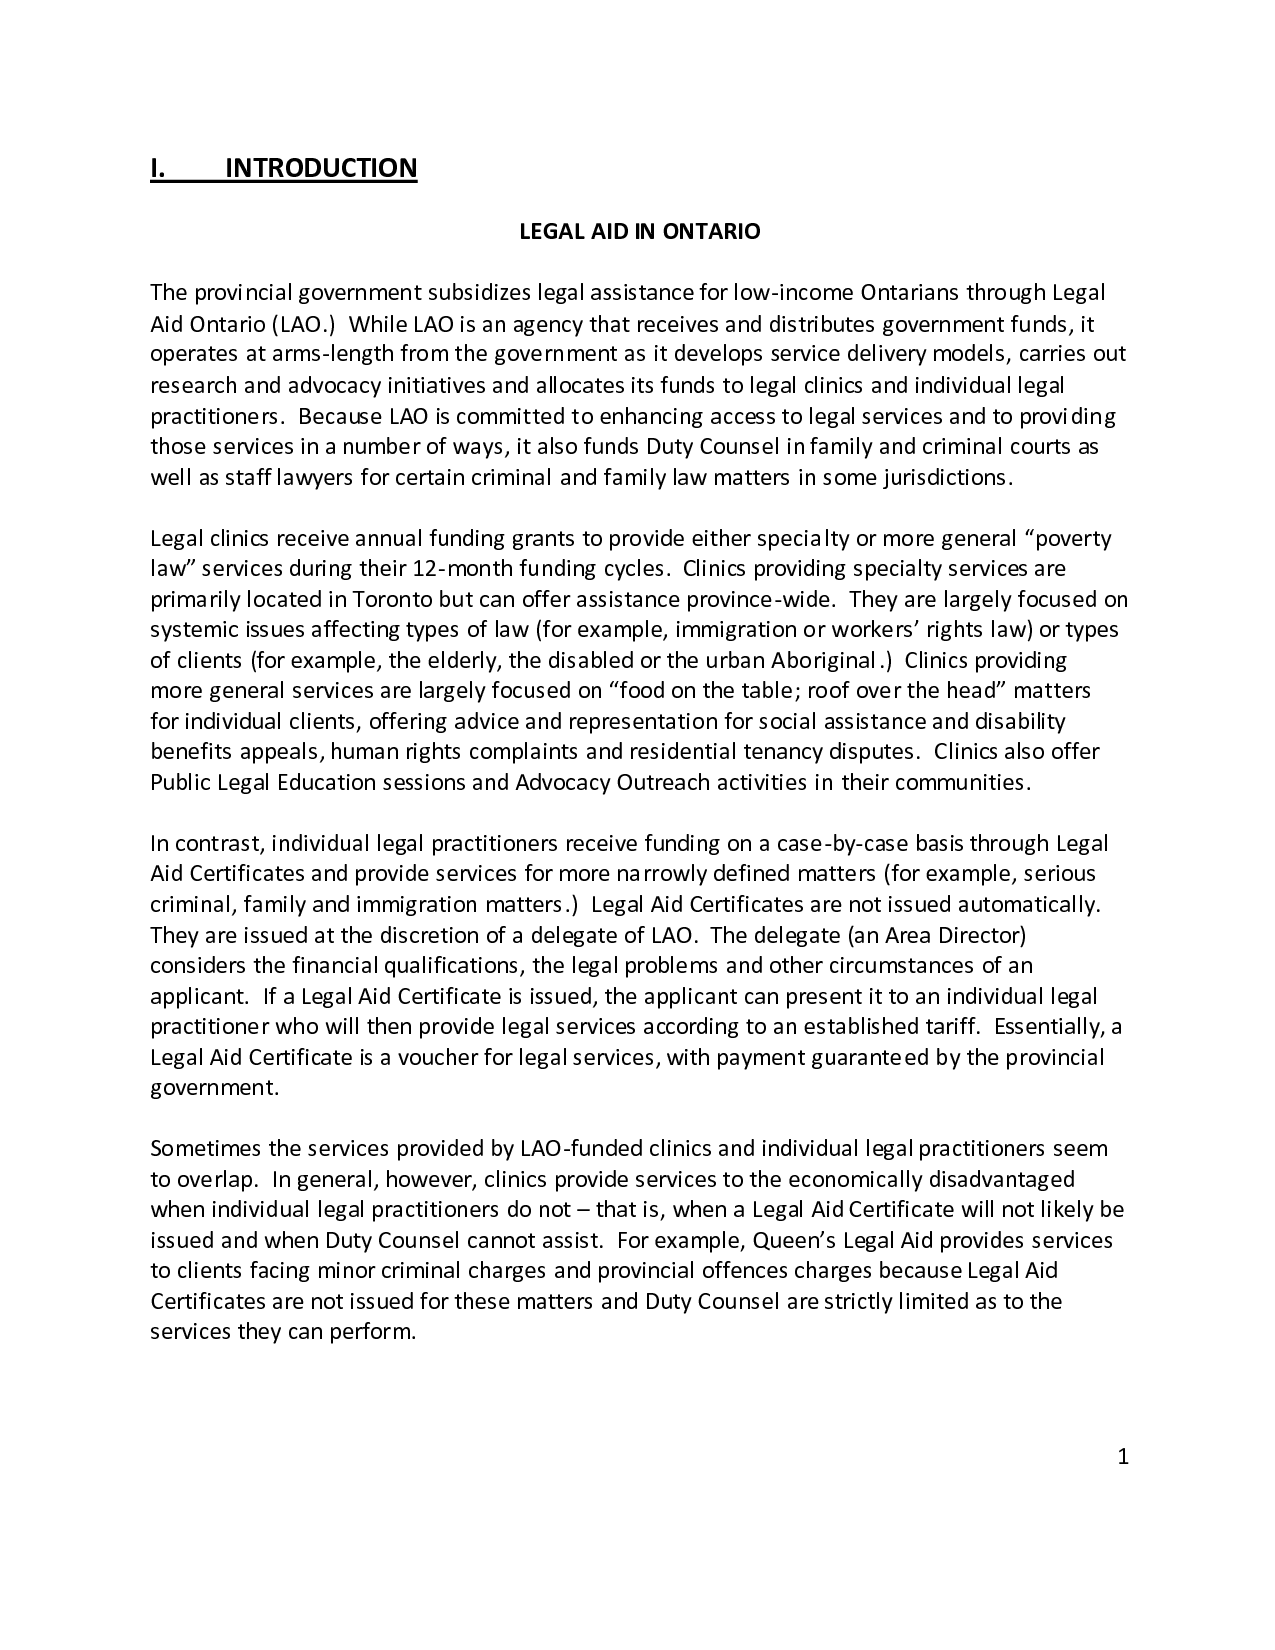 essay on apology apology to the stolen generations essay about